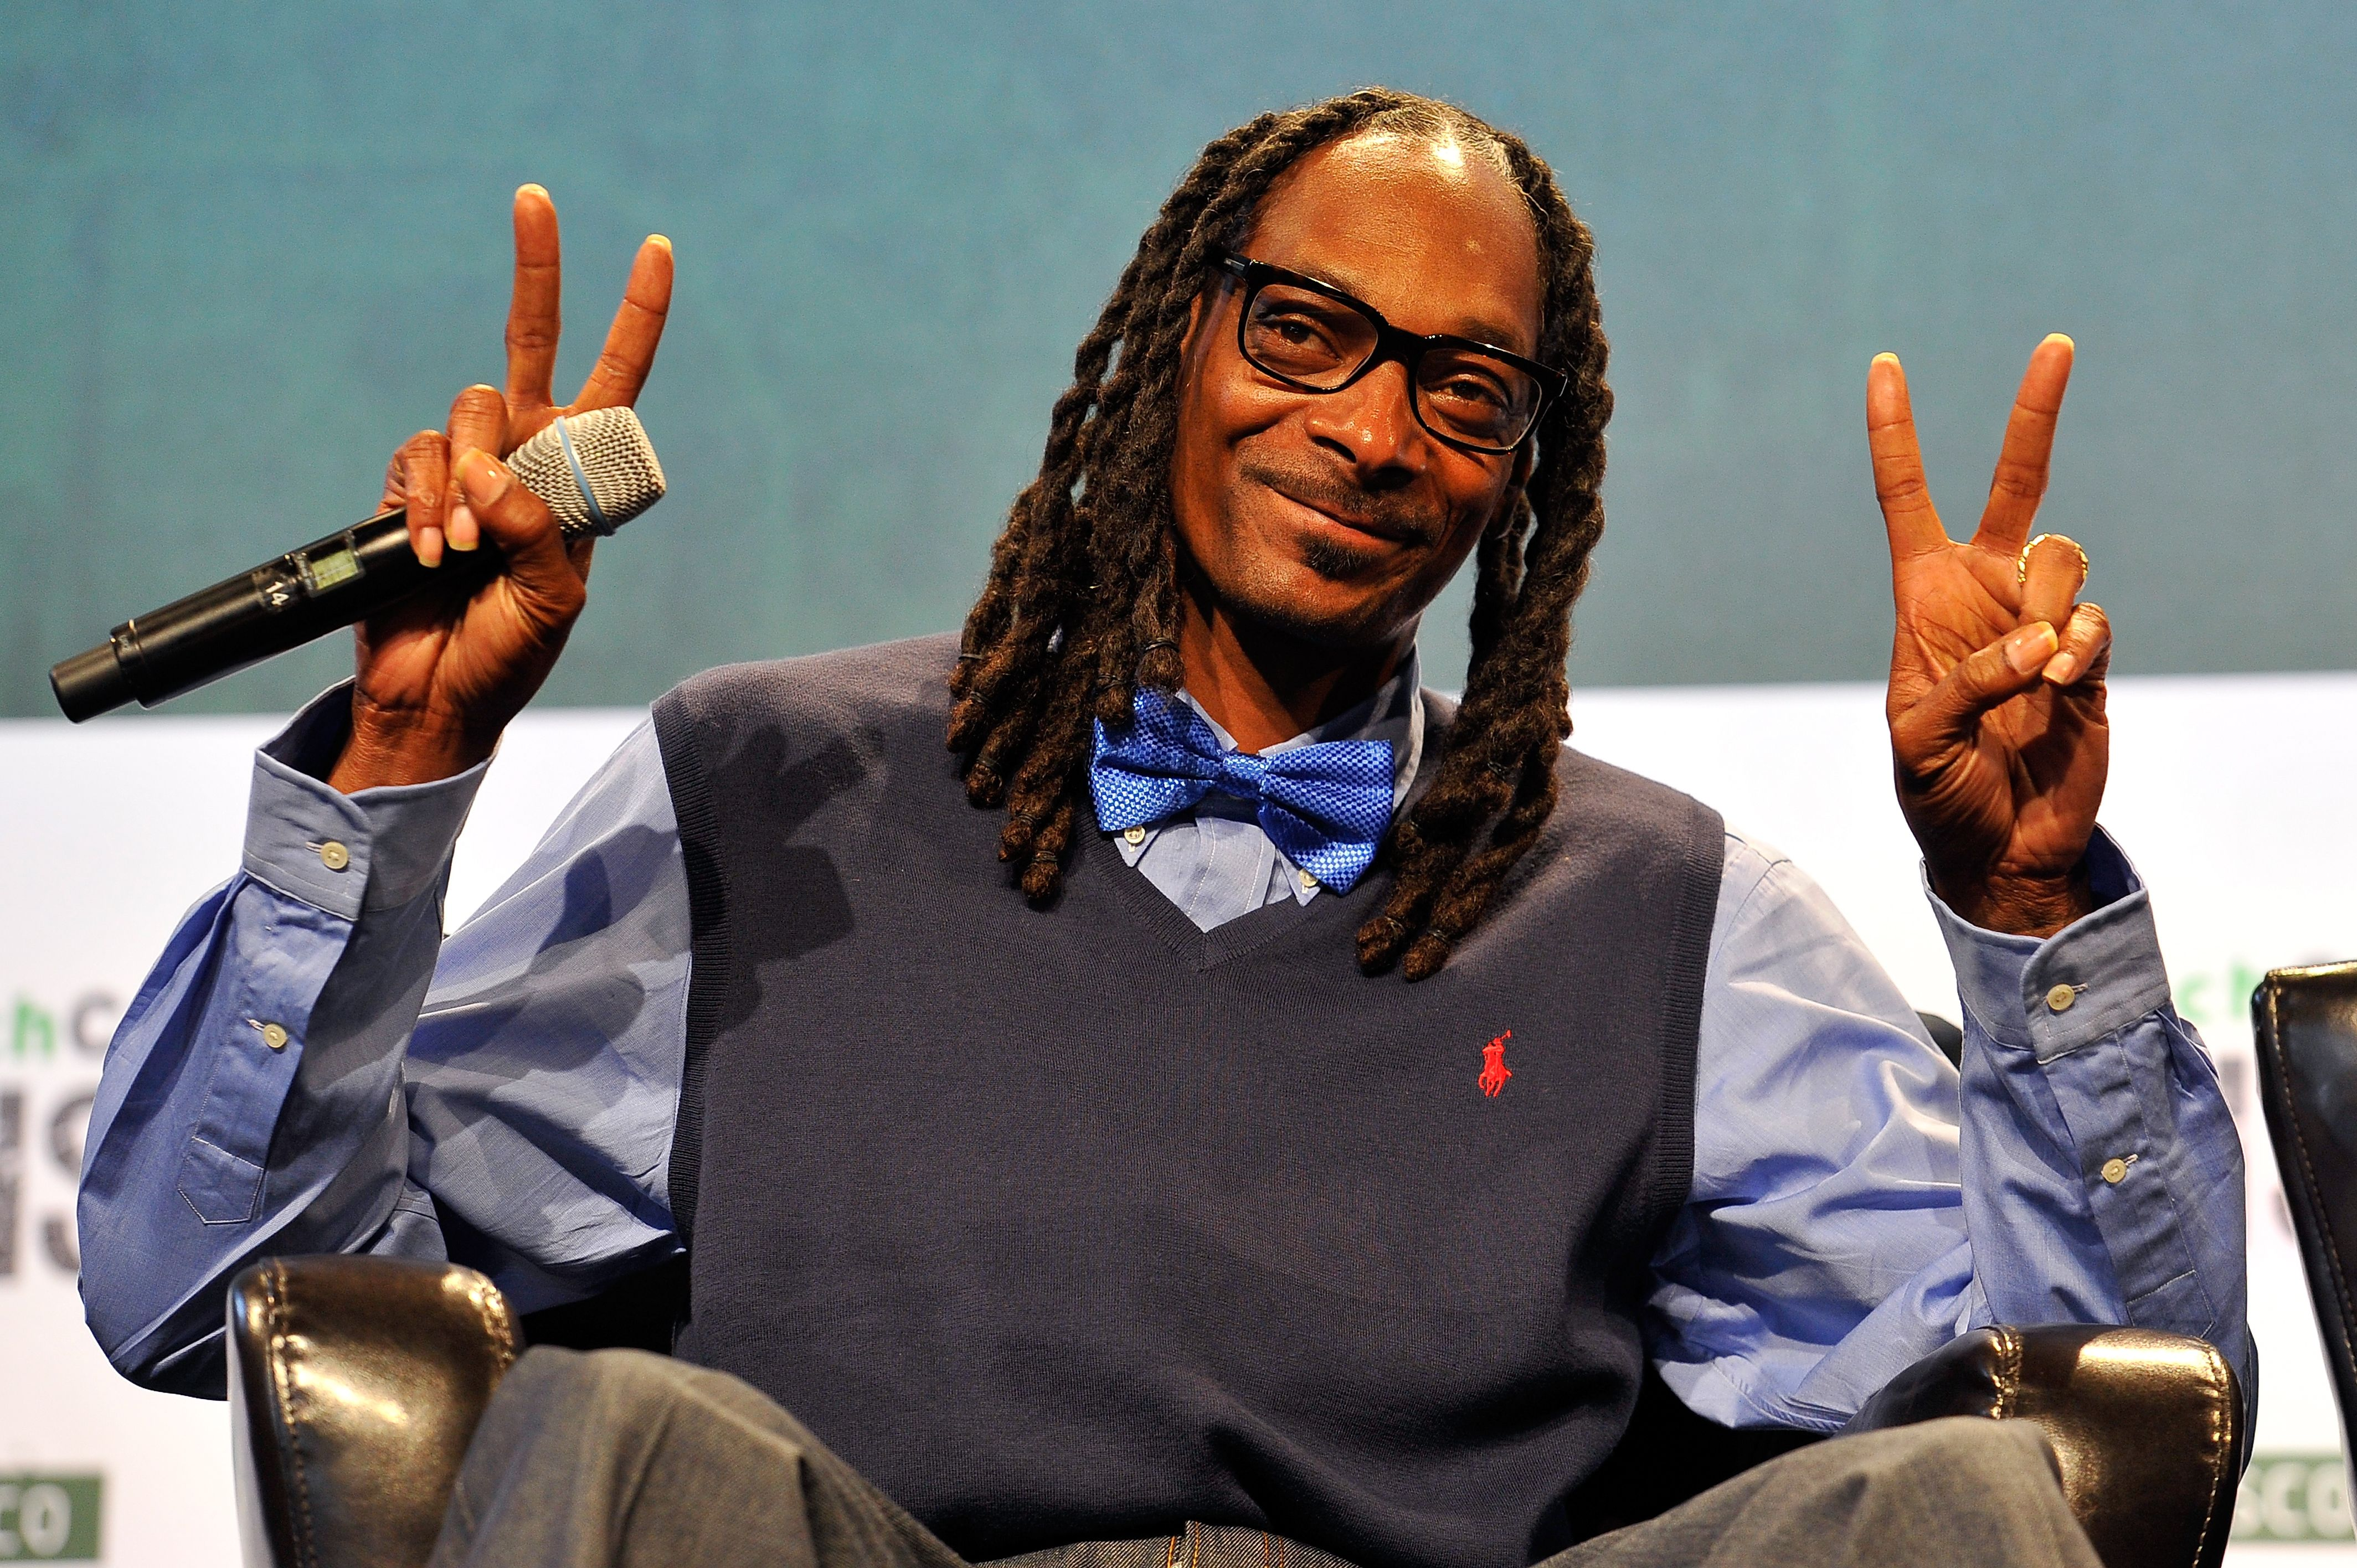 Snoop Dogg is playing LA instead of Denver on 4/20